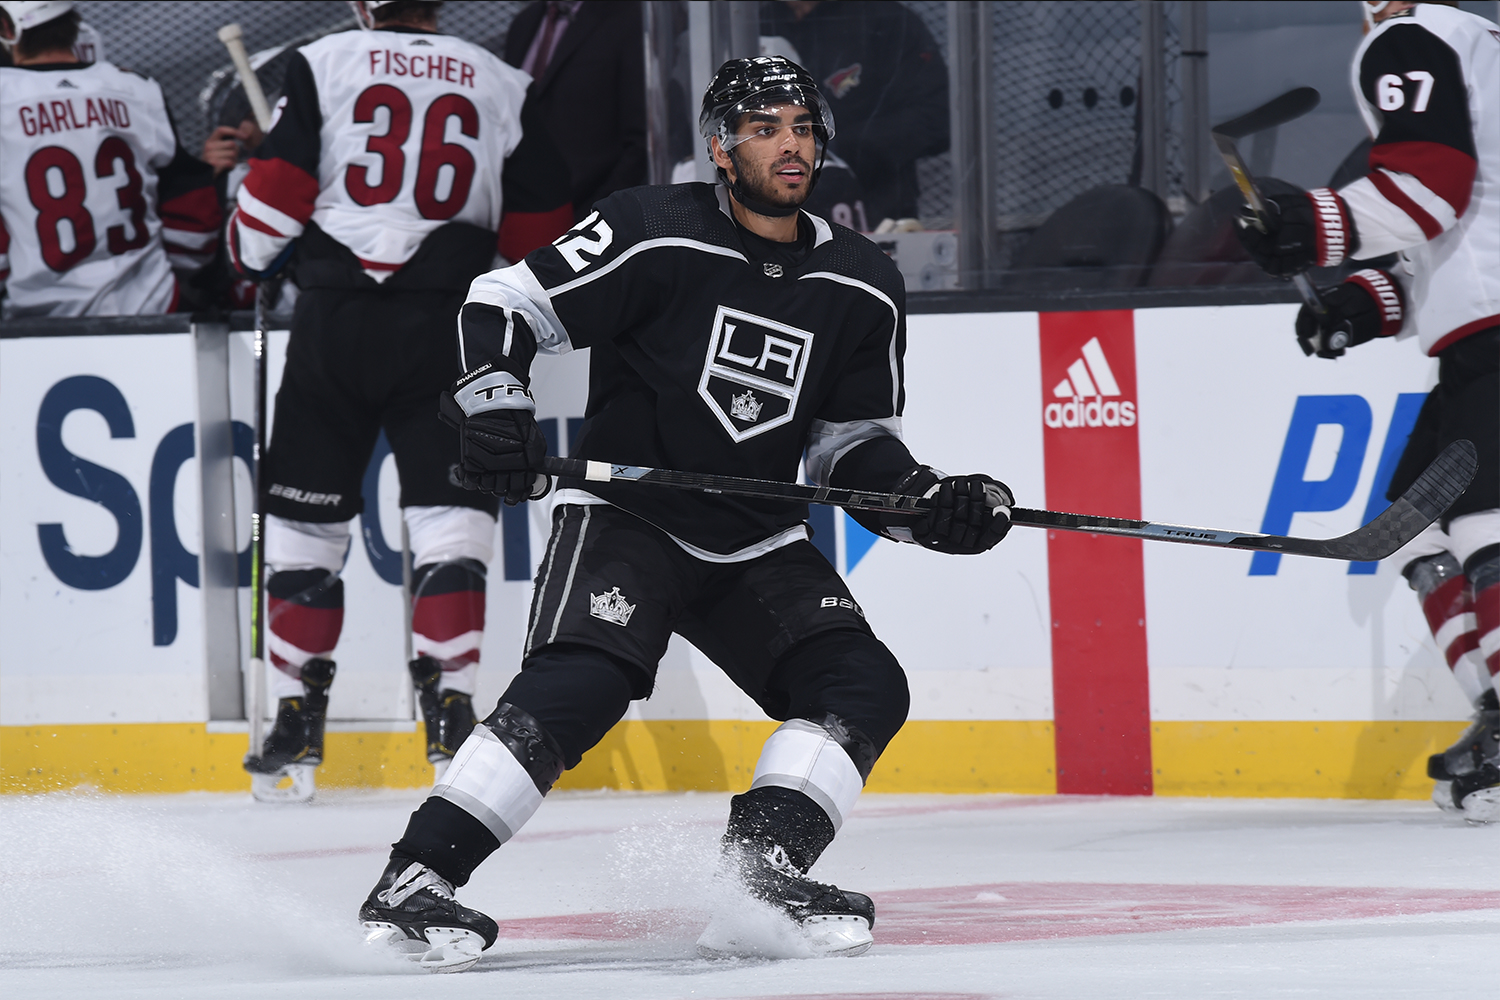 Andreas Athanasiou #22 of the Los Angeles Kings skates on the ice during the third period against the Arizona Coyotes at STAPLES Center on April 7, 2021